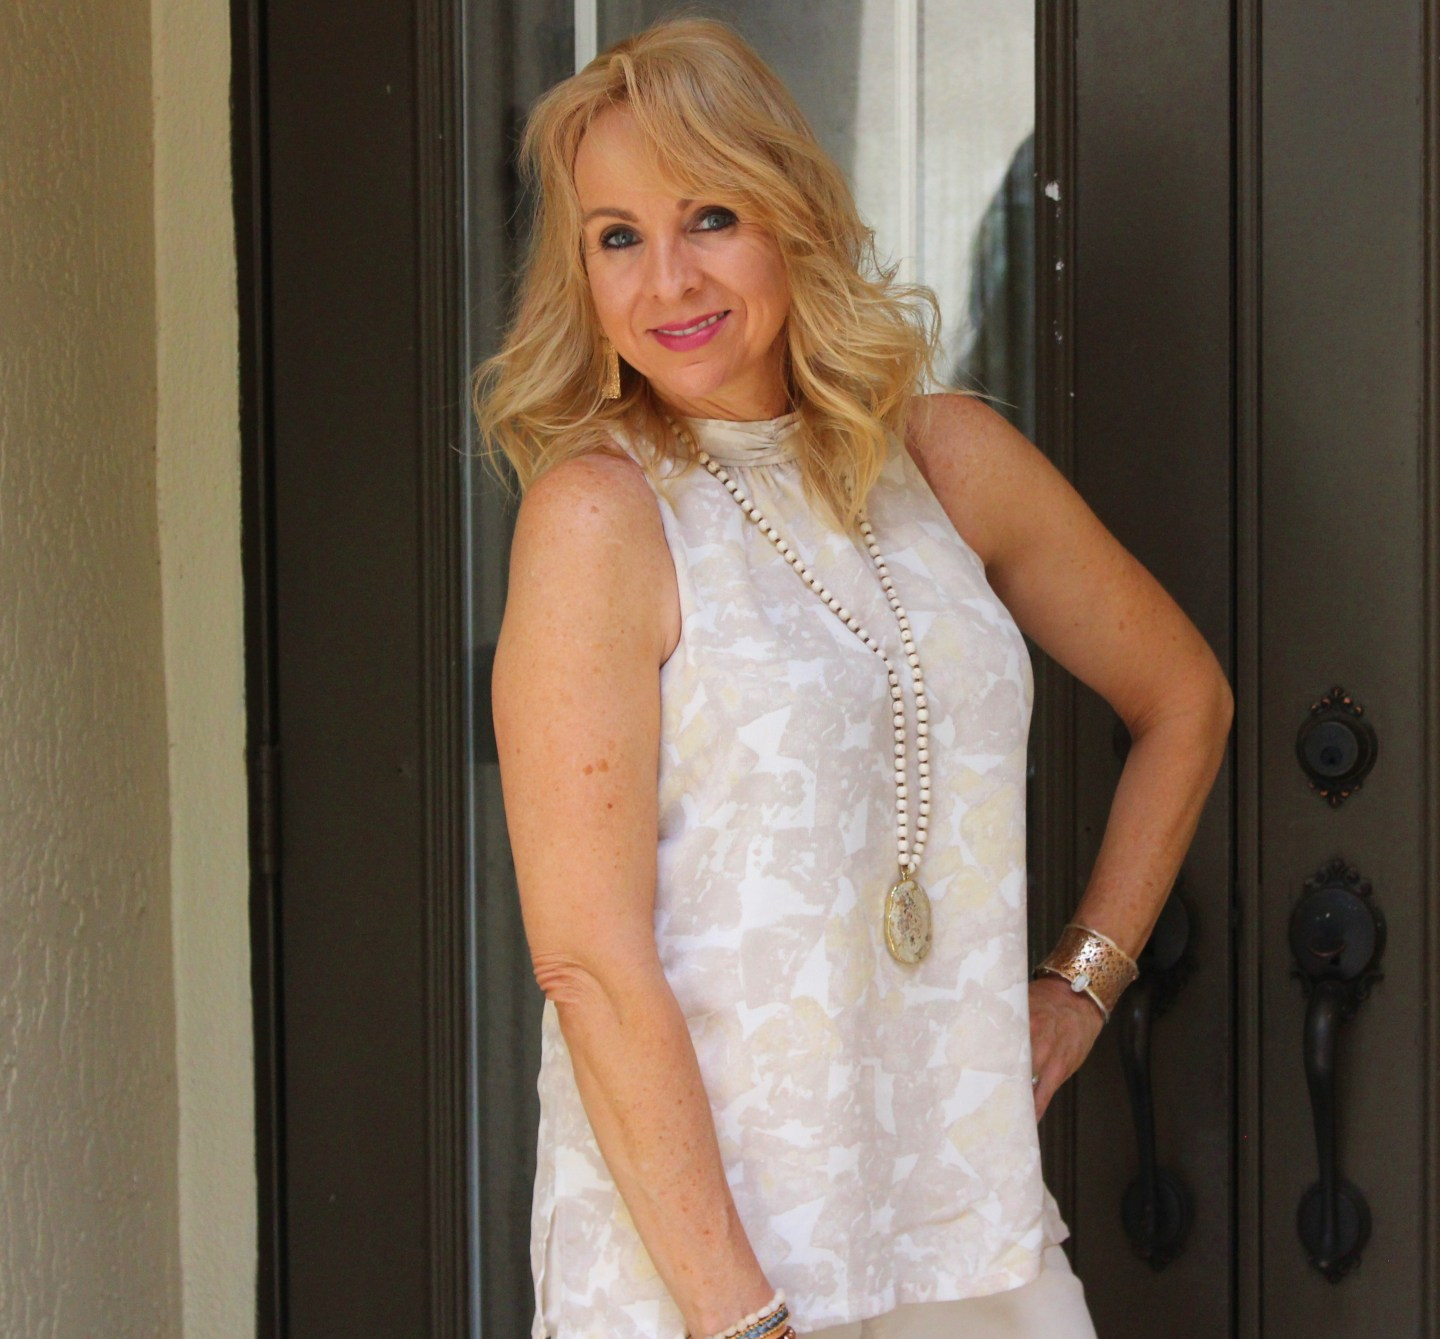 Target Prologue Sleeveless Blouse and Old Navy Cream Cropped Pants